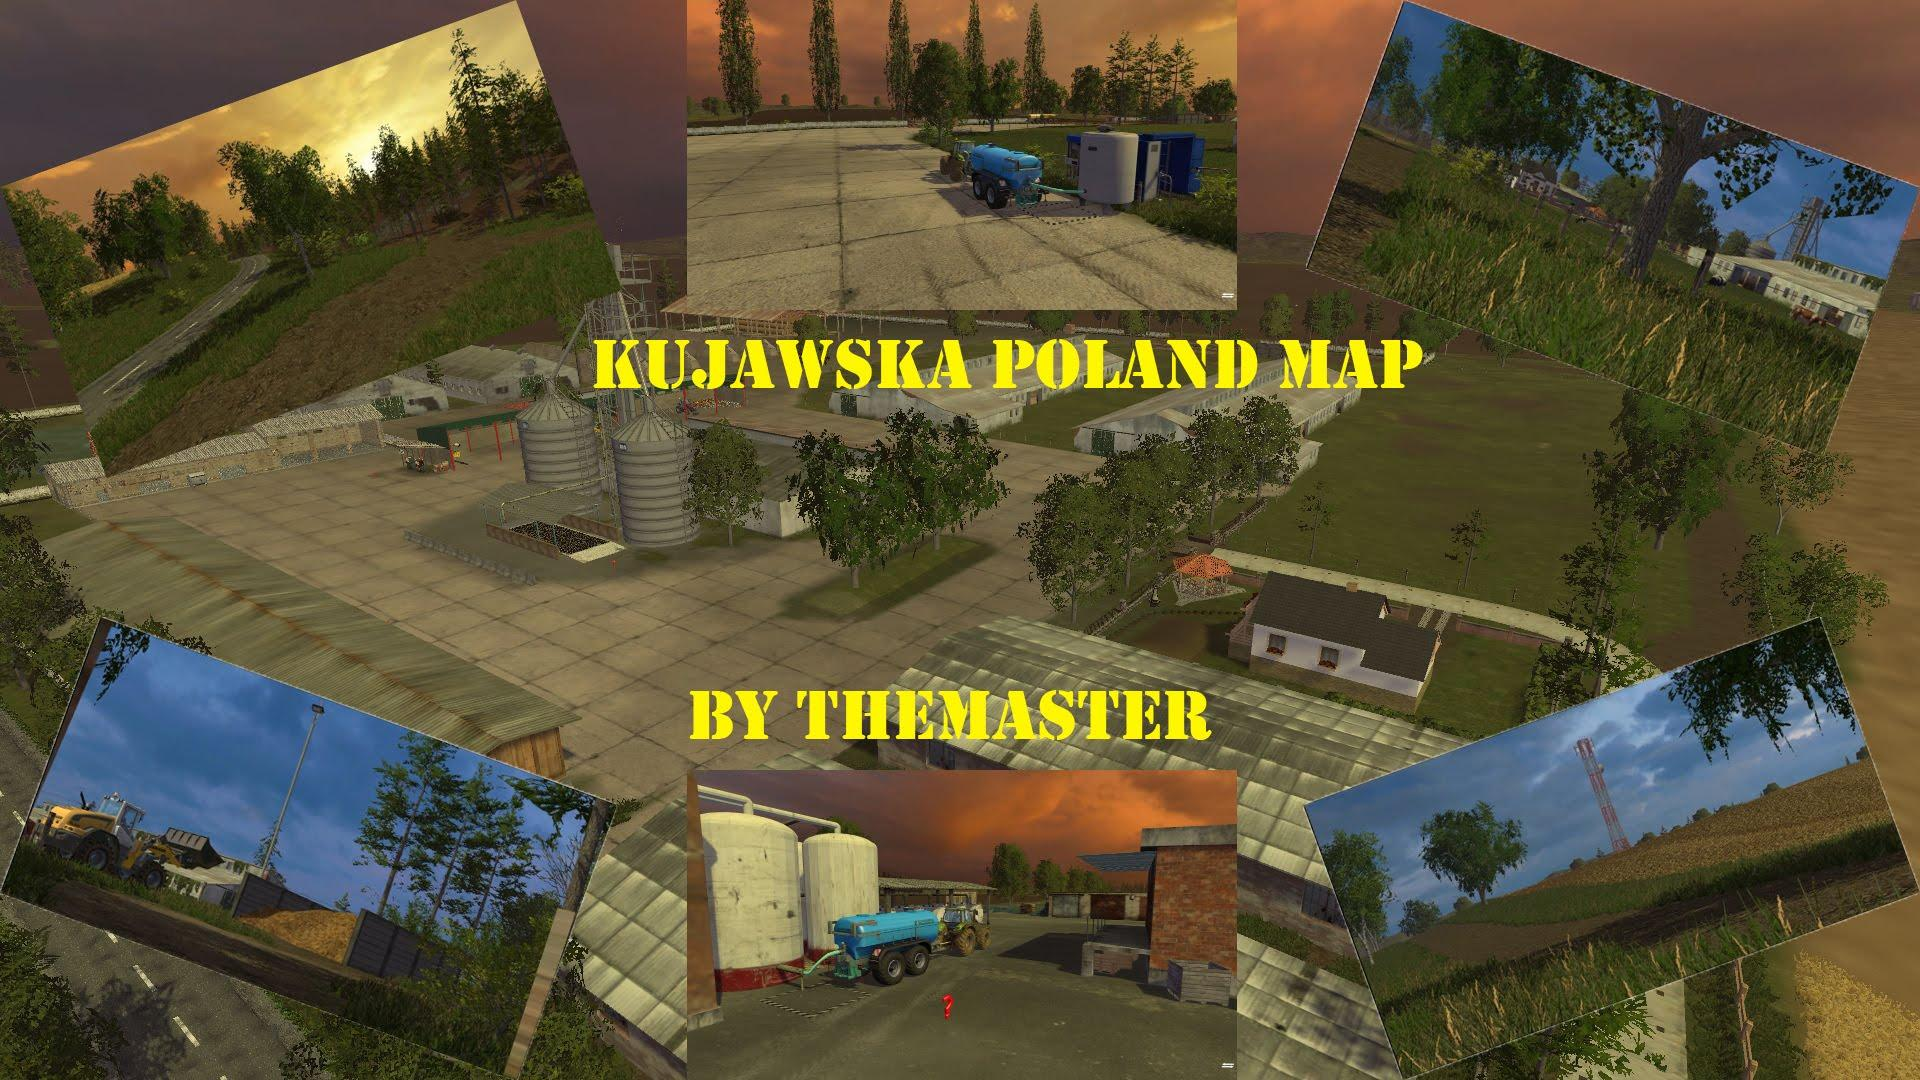 kujawska-poland-map-by-themasterteamtv_1